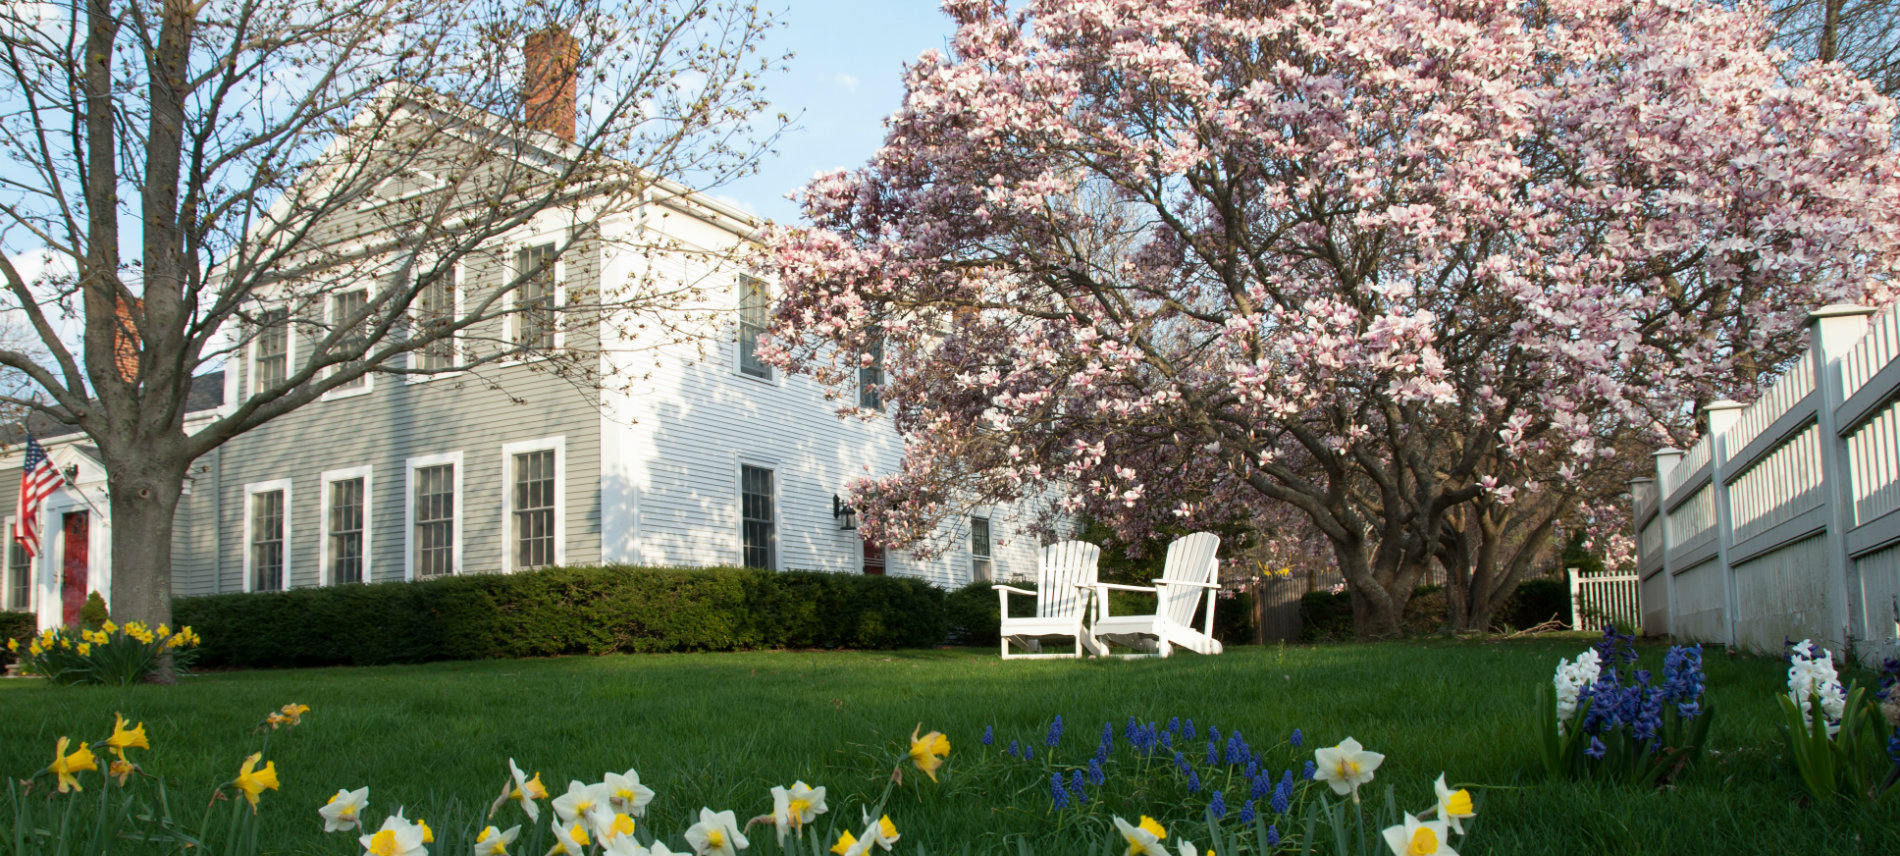 Brewster by the Sea Inn in the spring with green grass, yellow and white flowers and pink blooming tree | Brewster By the Sea Cape Cod Inn | Brewster, MA